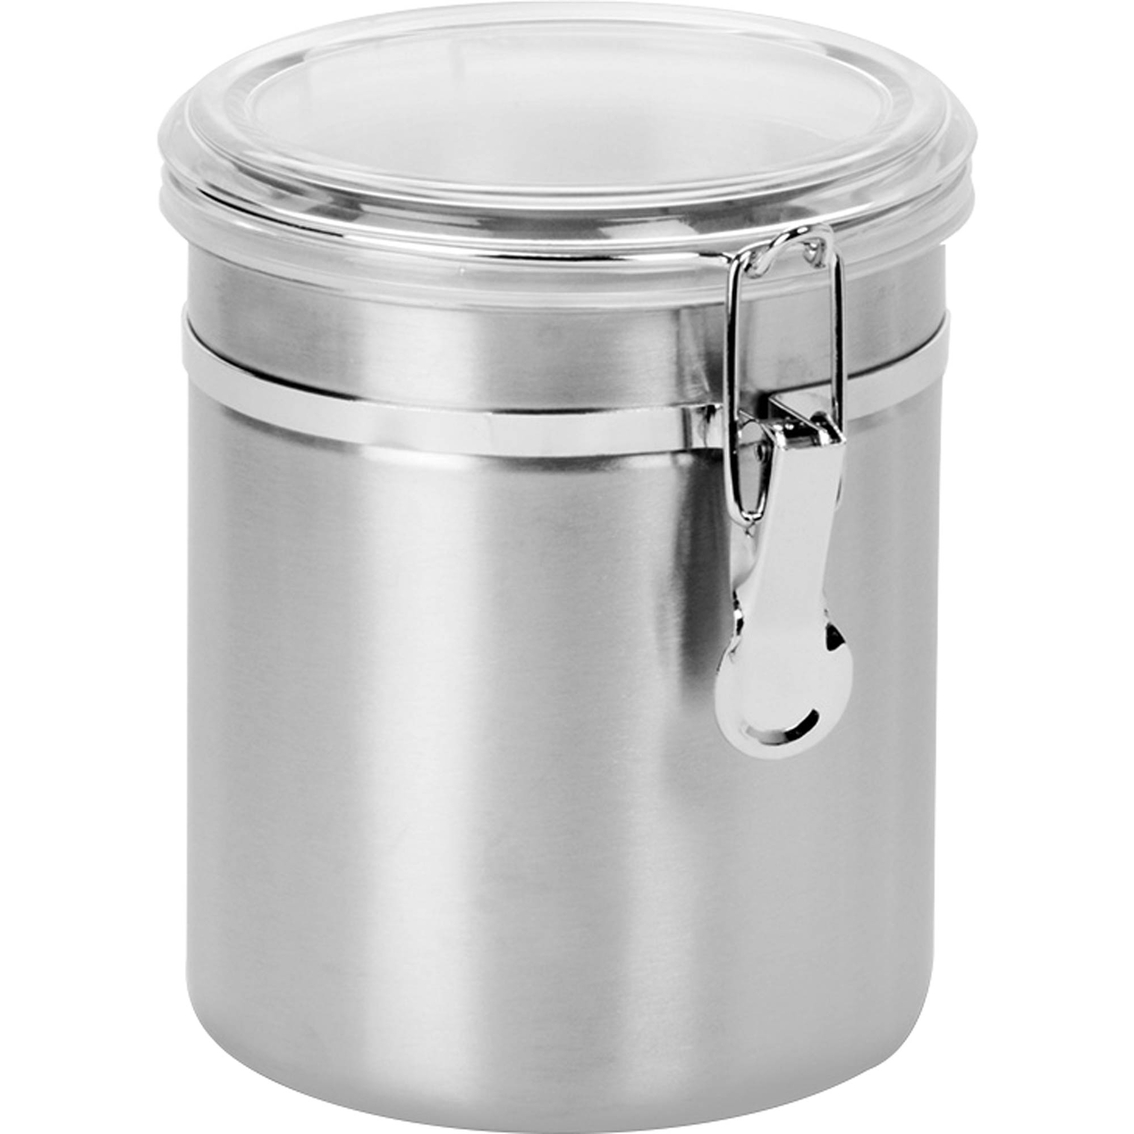 Anchor Hocking 47 Oz Stainless Steel Canister Canisters